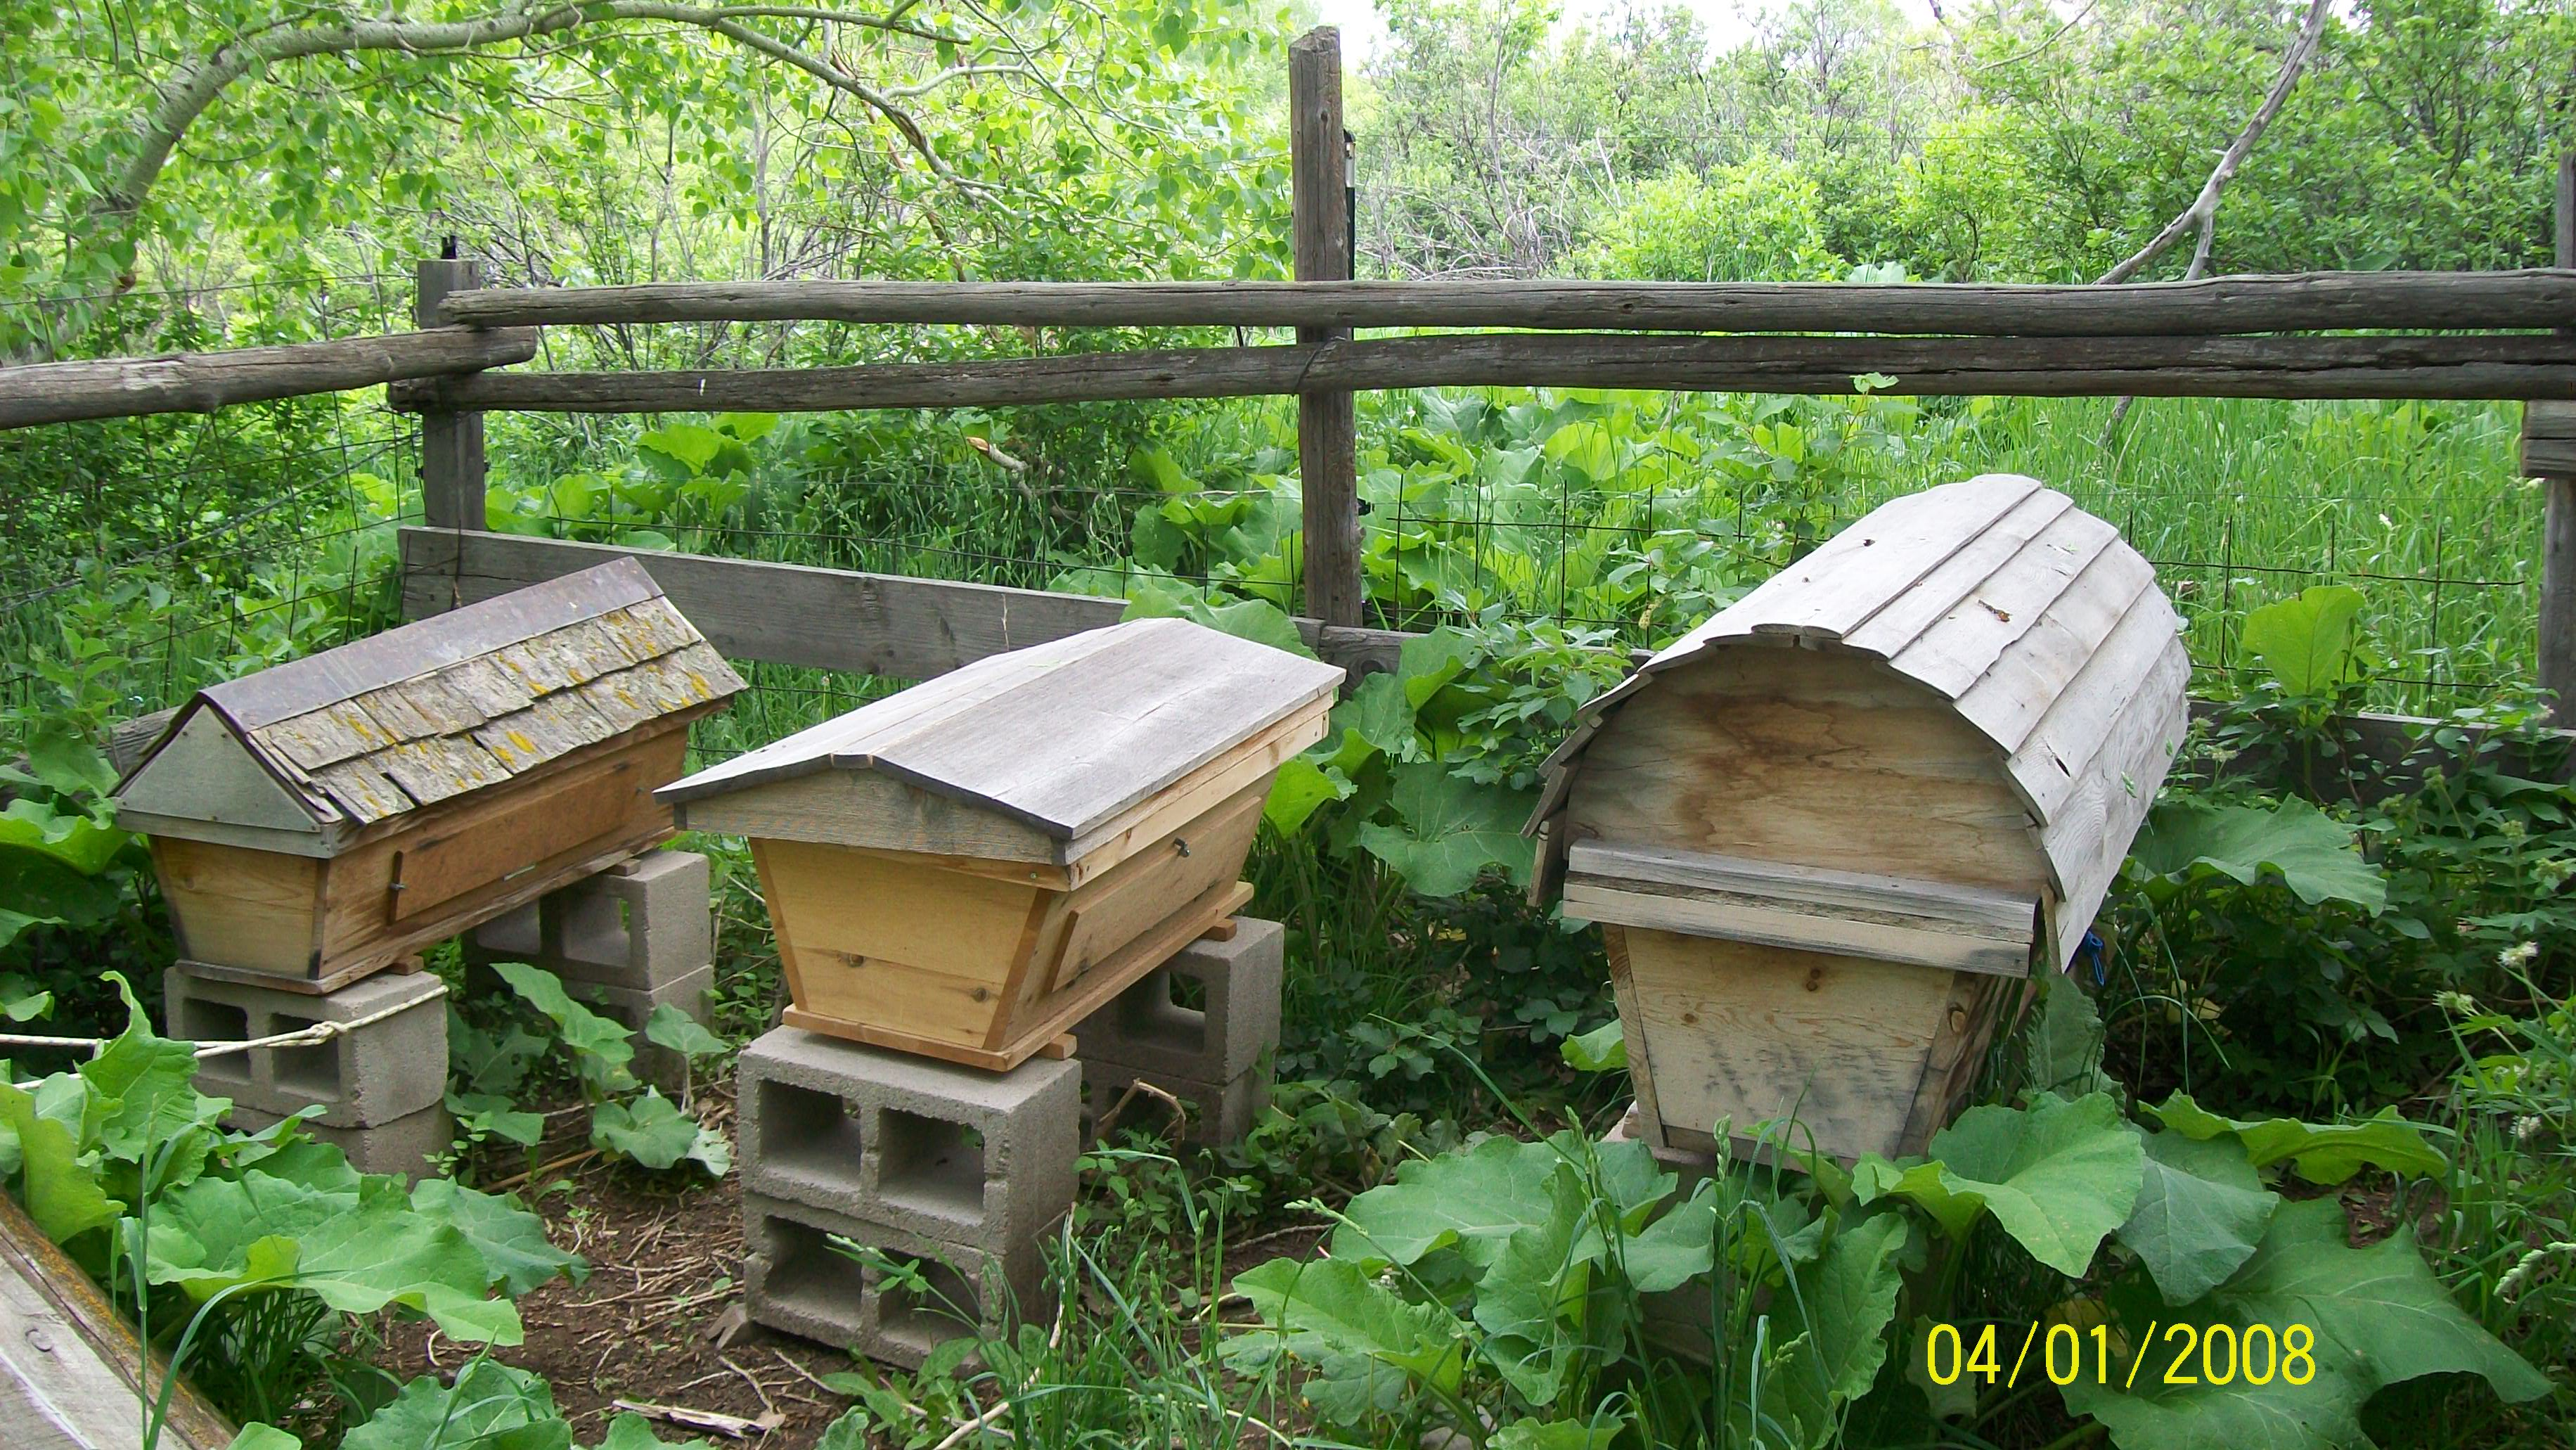 Ordinaire There Are 8 Hives ...